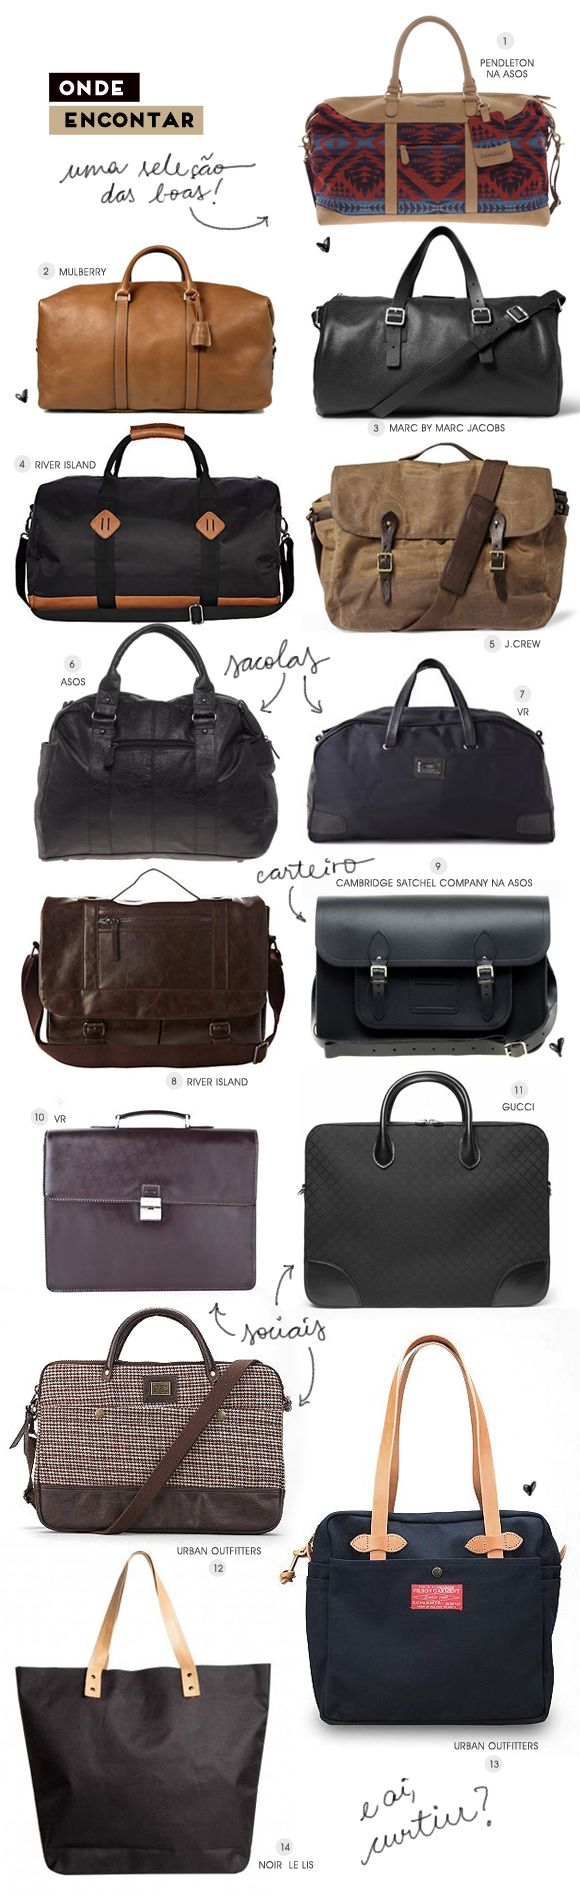 Mens bags #bags #menstyle #tipographics